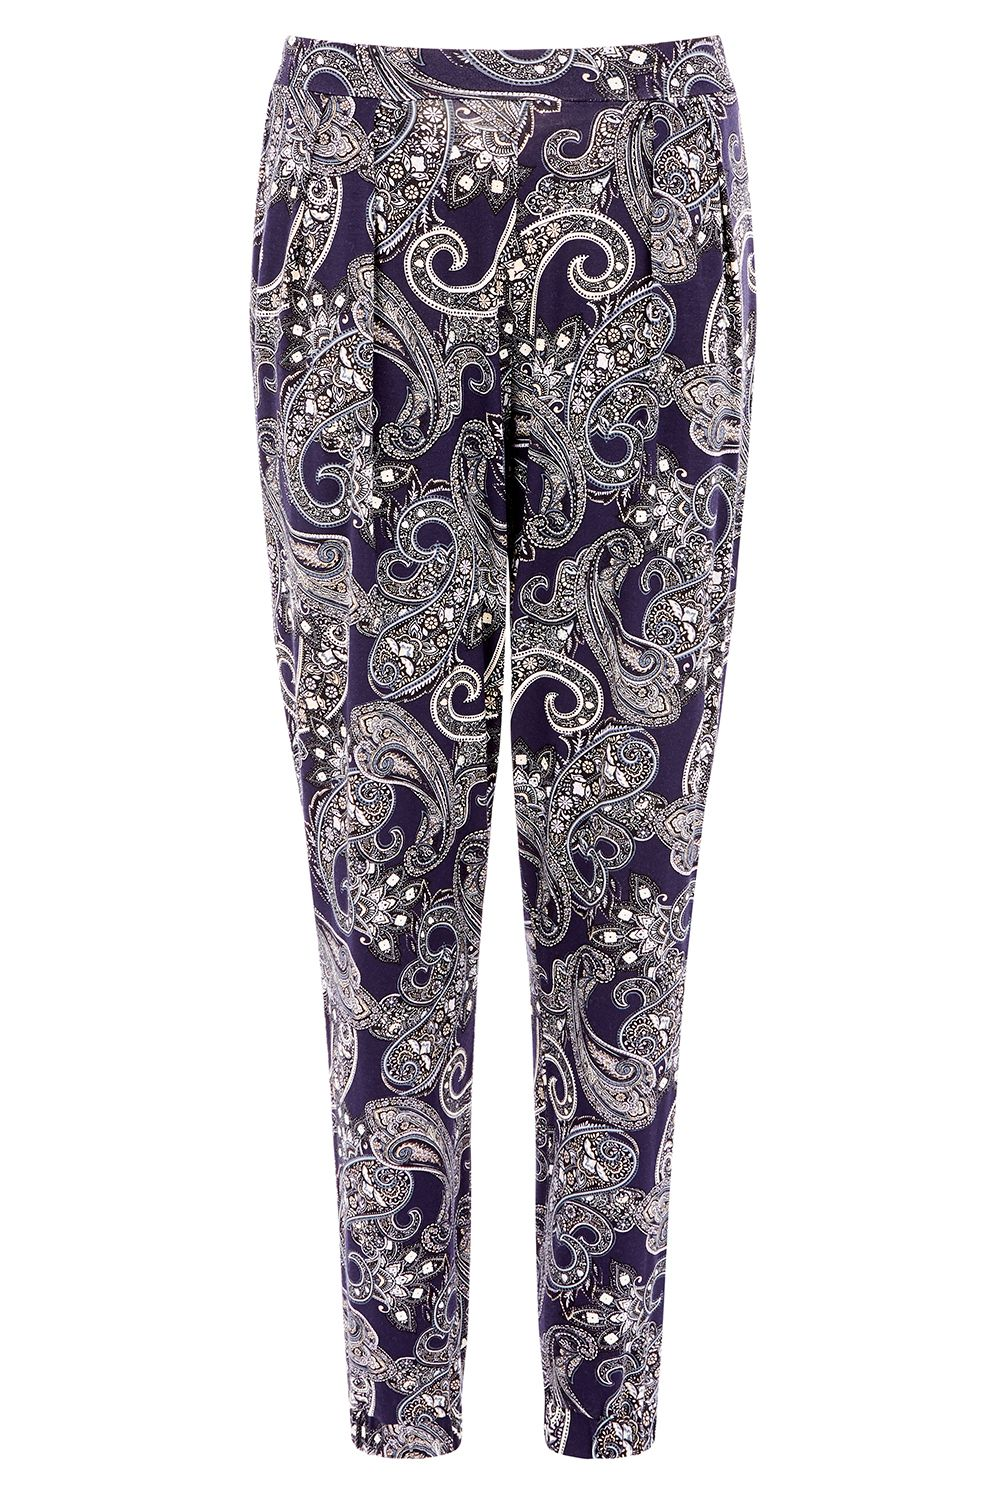 Oasis AZTEC PRINT TROUSER, Multi-Coloured